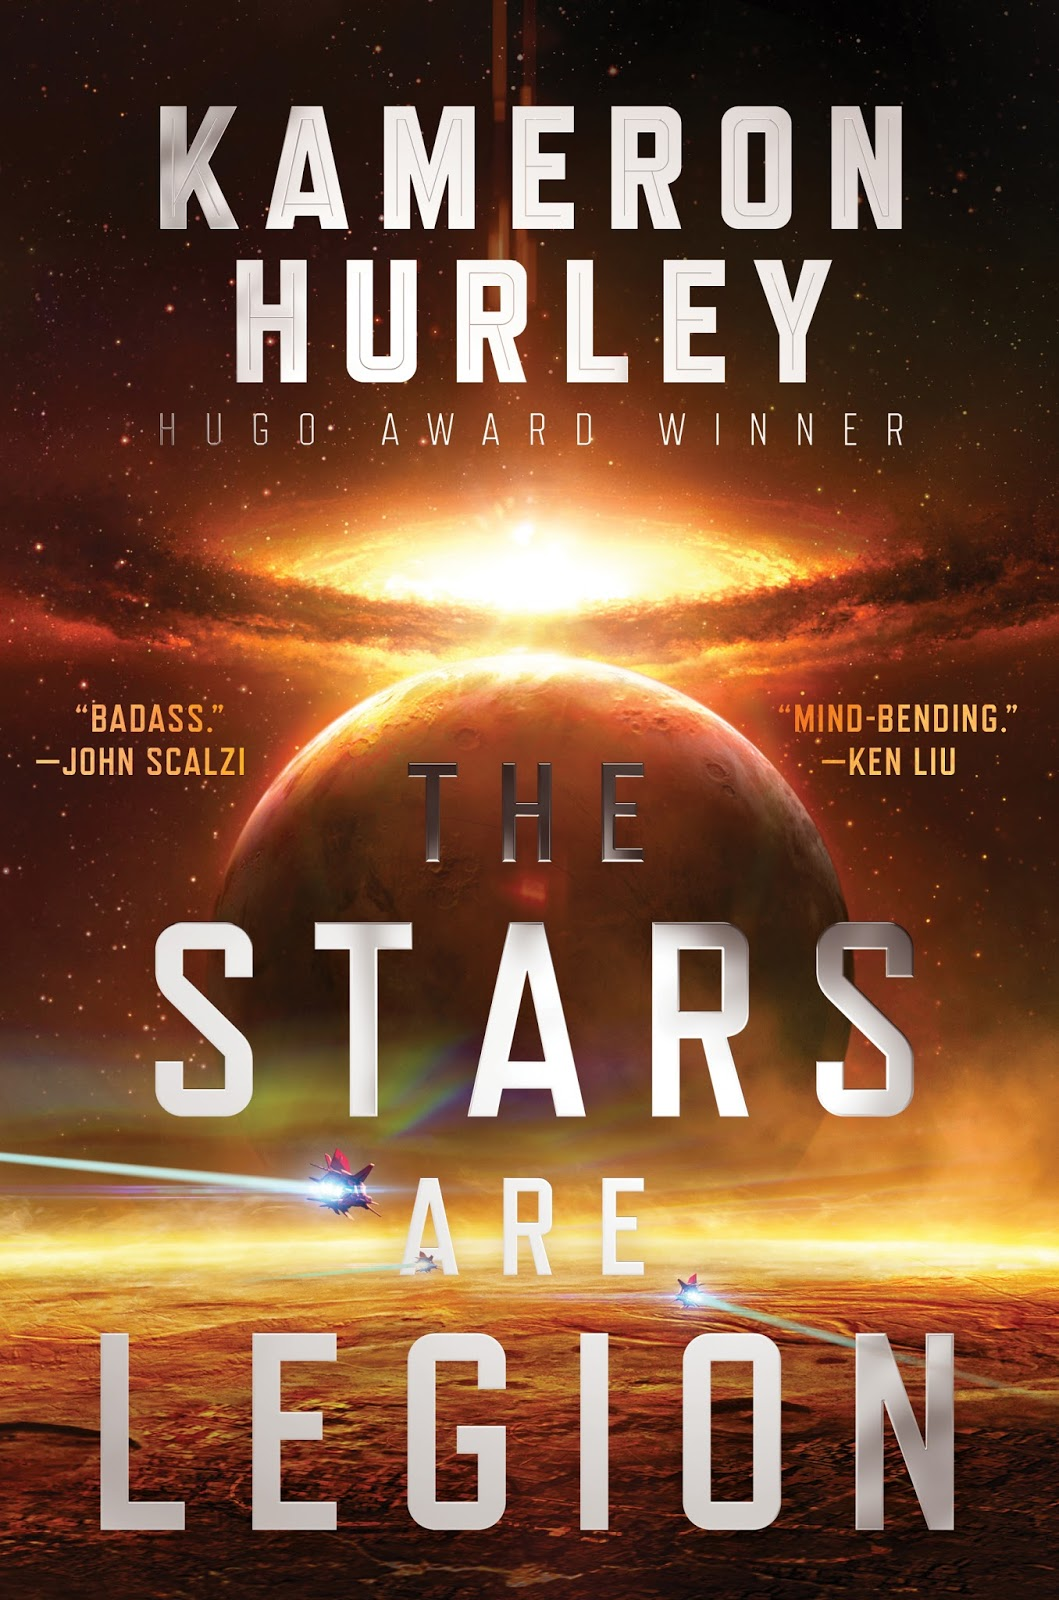 A stunning redefinition of space opera filled with high action and  adventure.